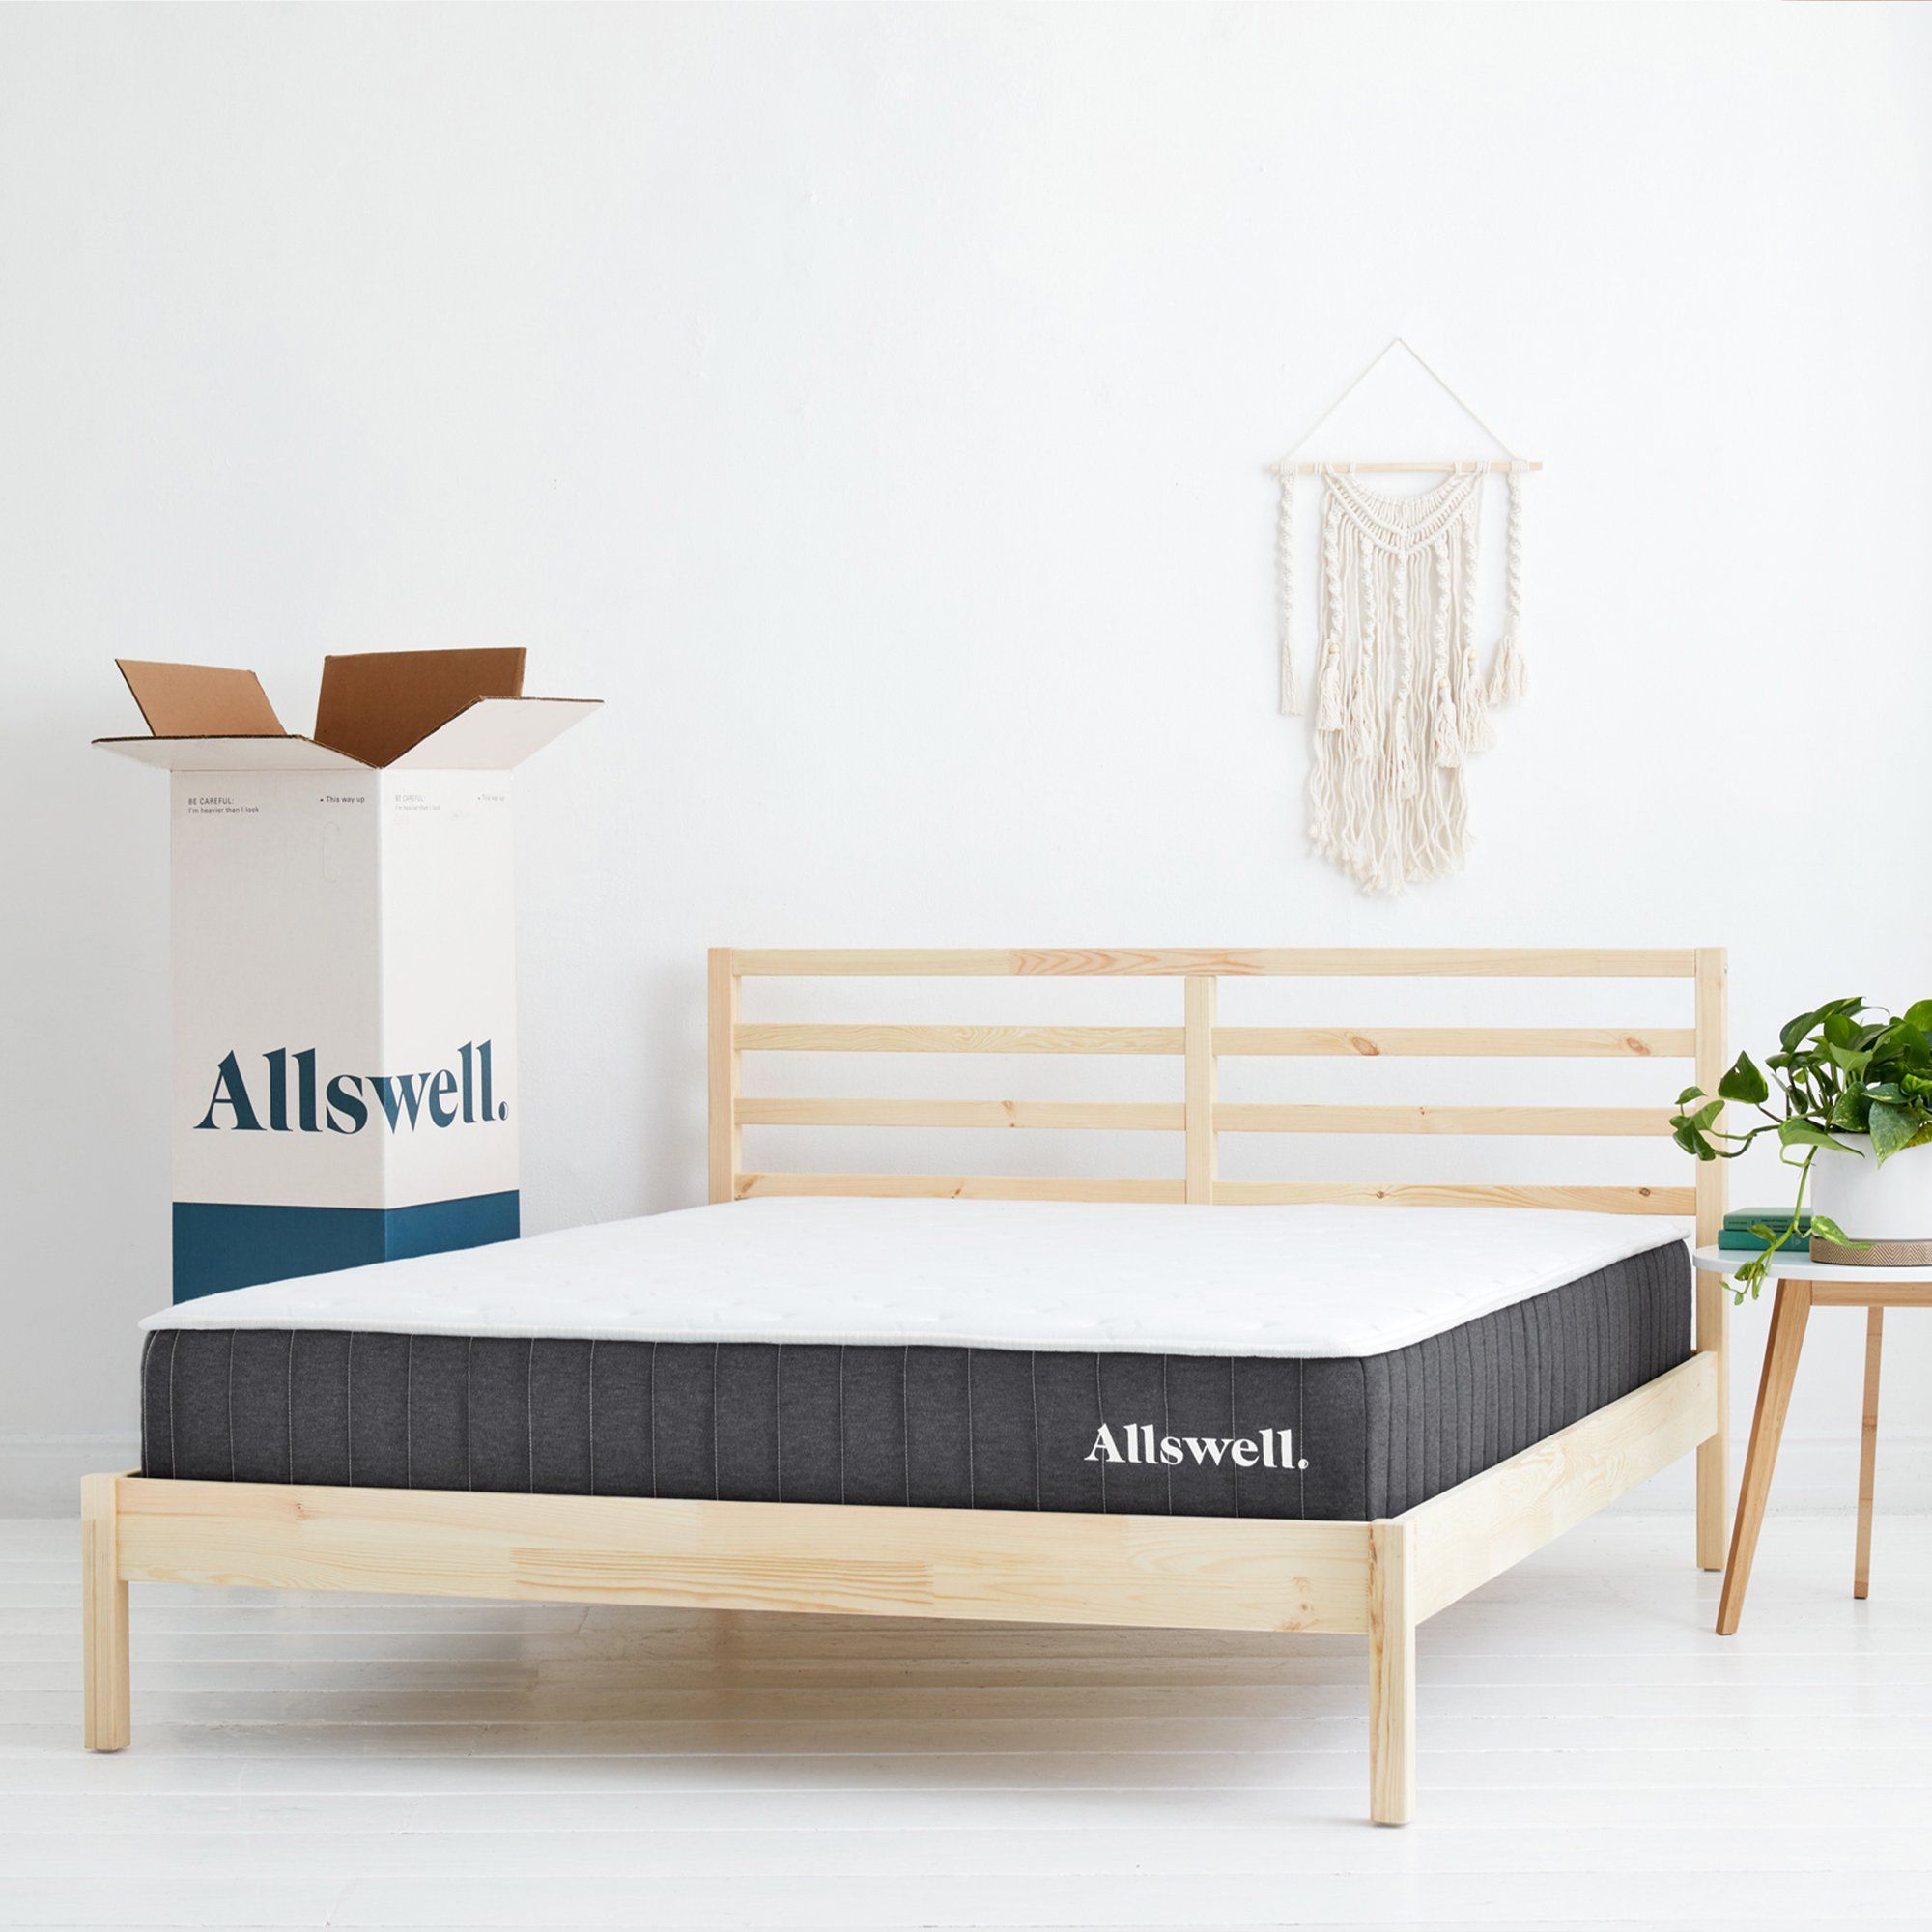 The Allswell 10 Bed In A Box Hybrid Mattress Twin Walmart Com Box Bed Hybrid Mattress King Mattress